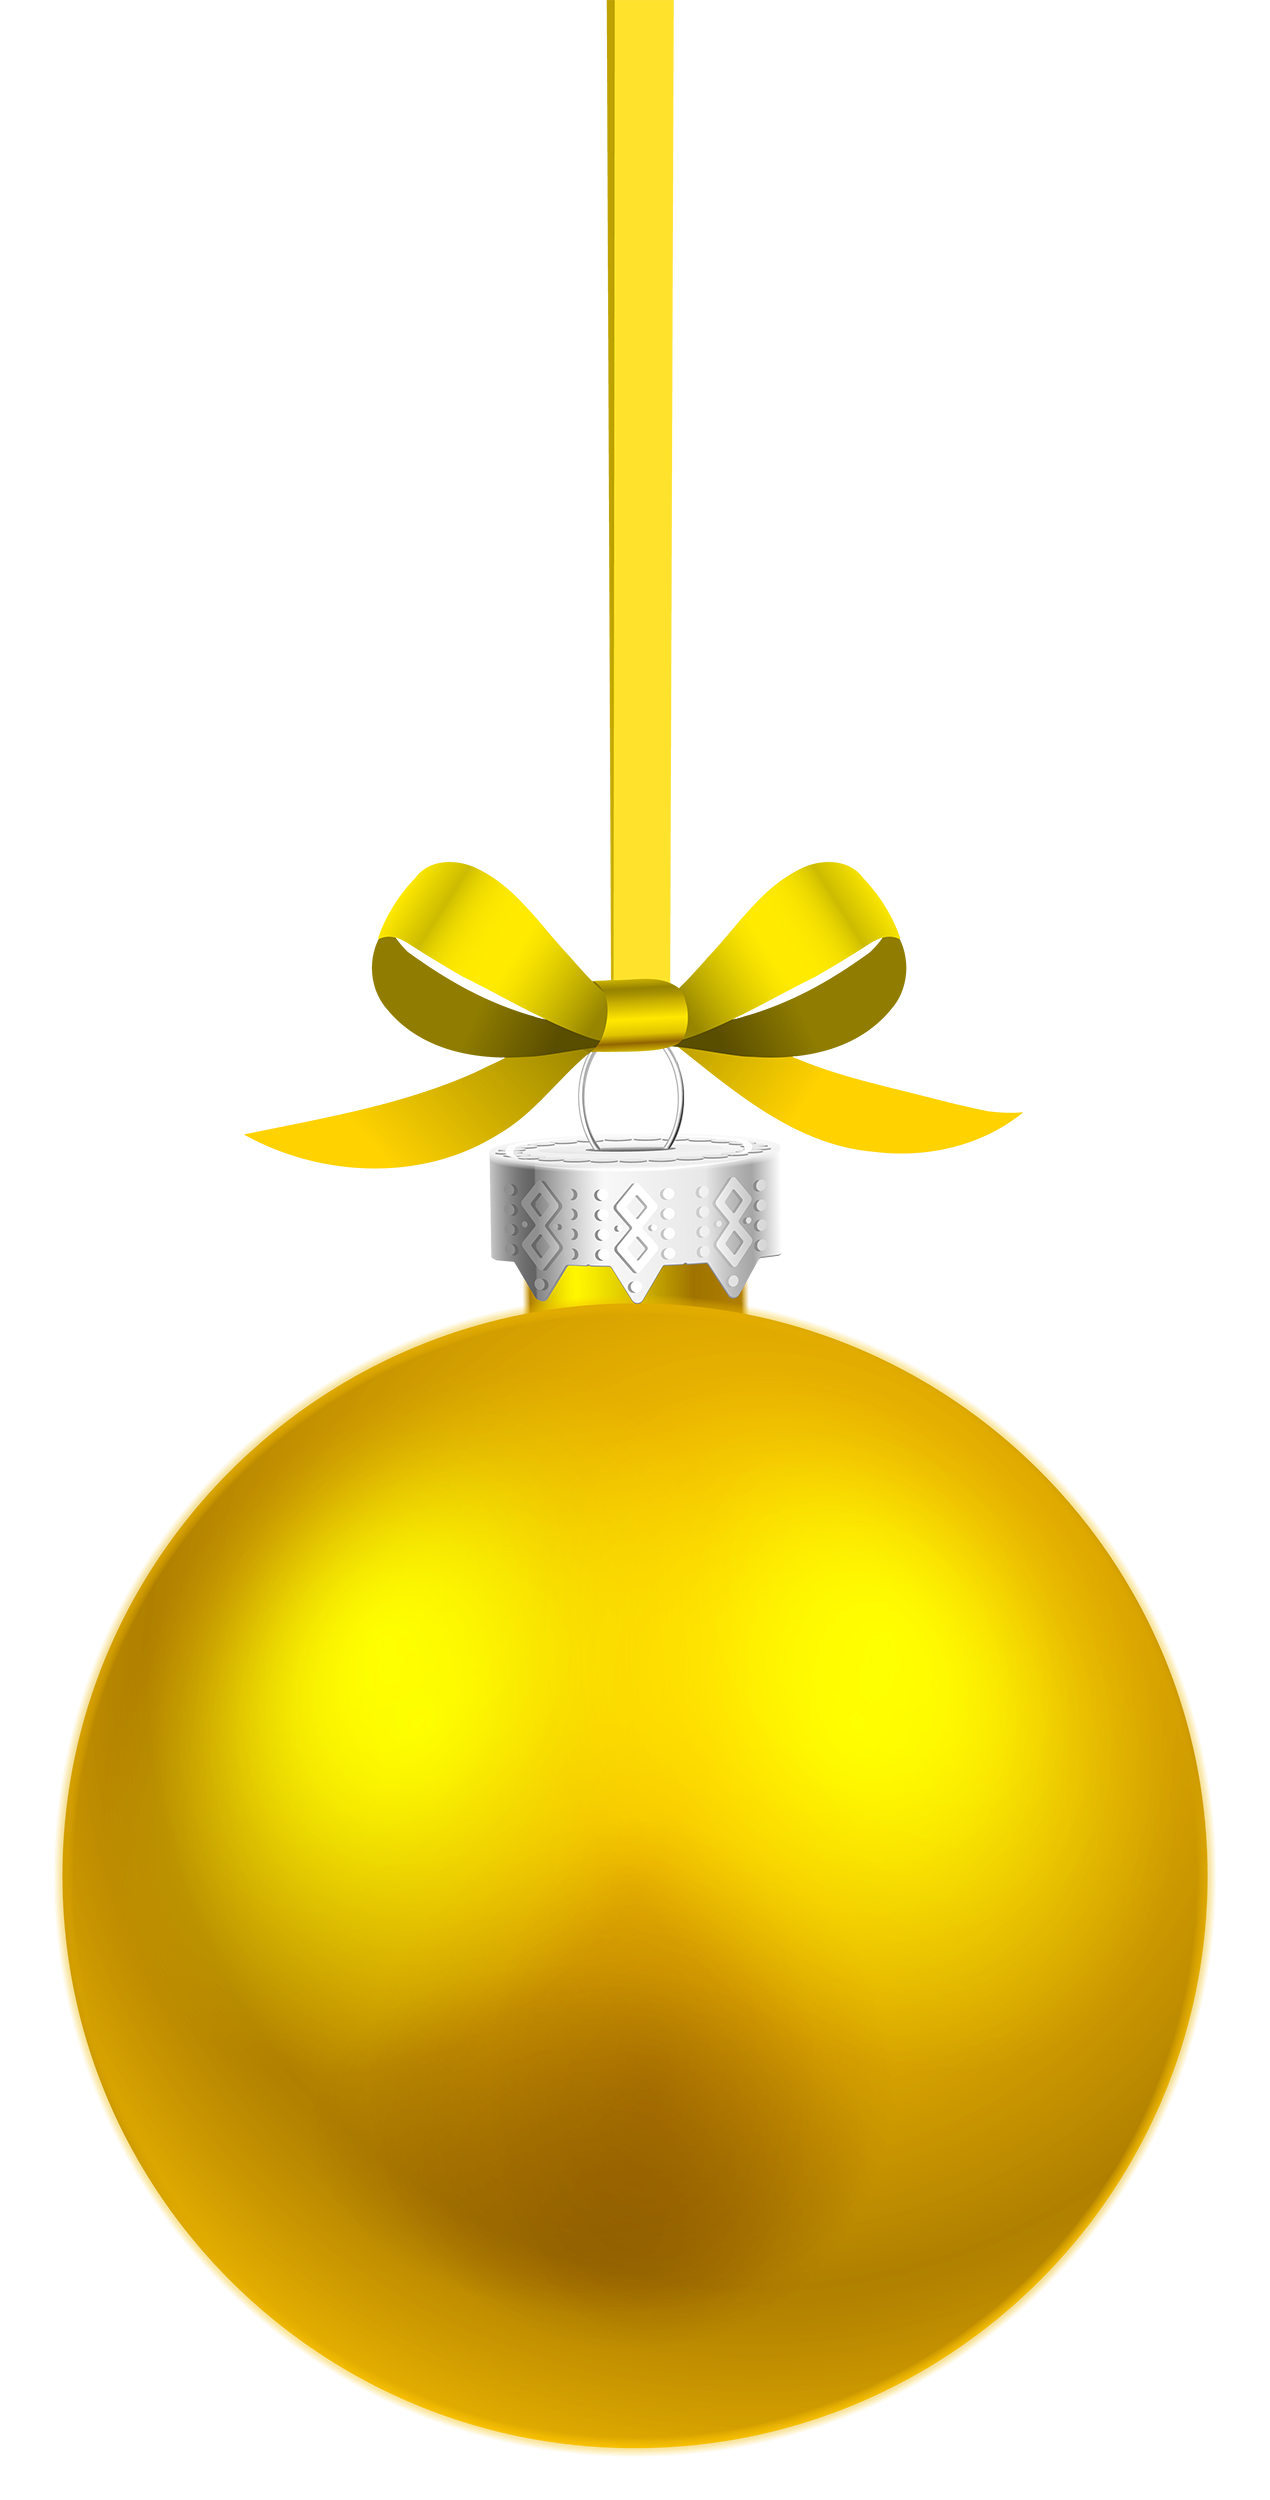 Ball clipart ornament. Yellow hanging christmas png